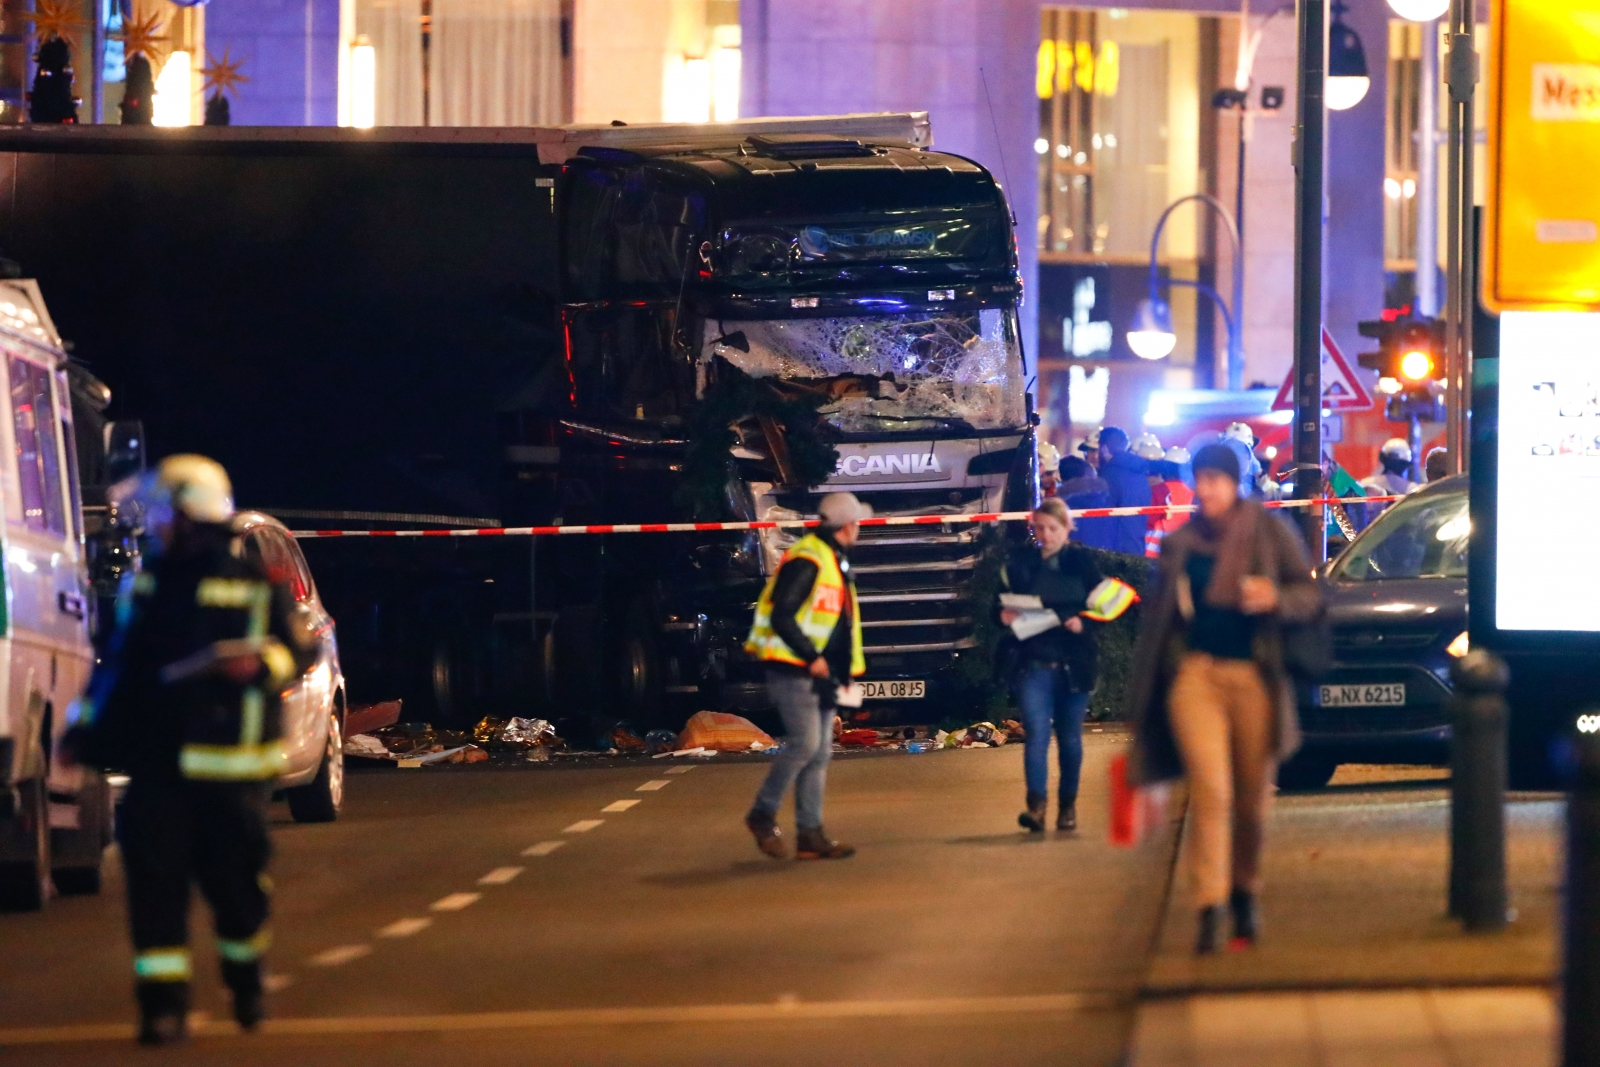 Police work at the site of an accident at a Christmas market on Breitscheidplatz square, Berlin